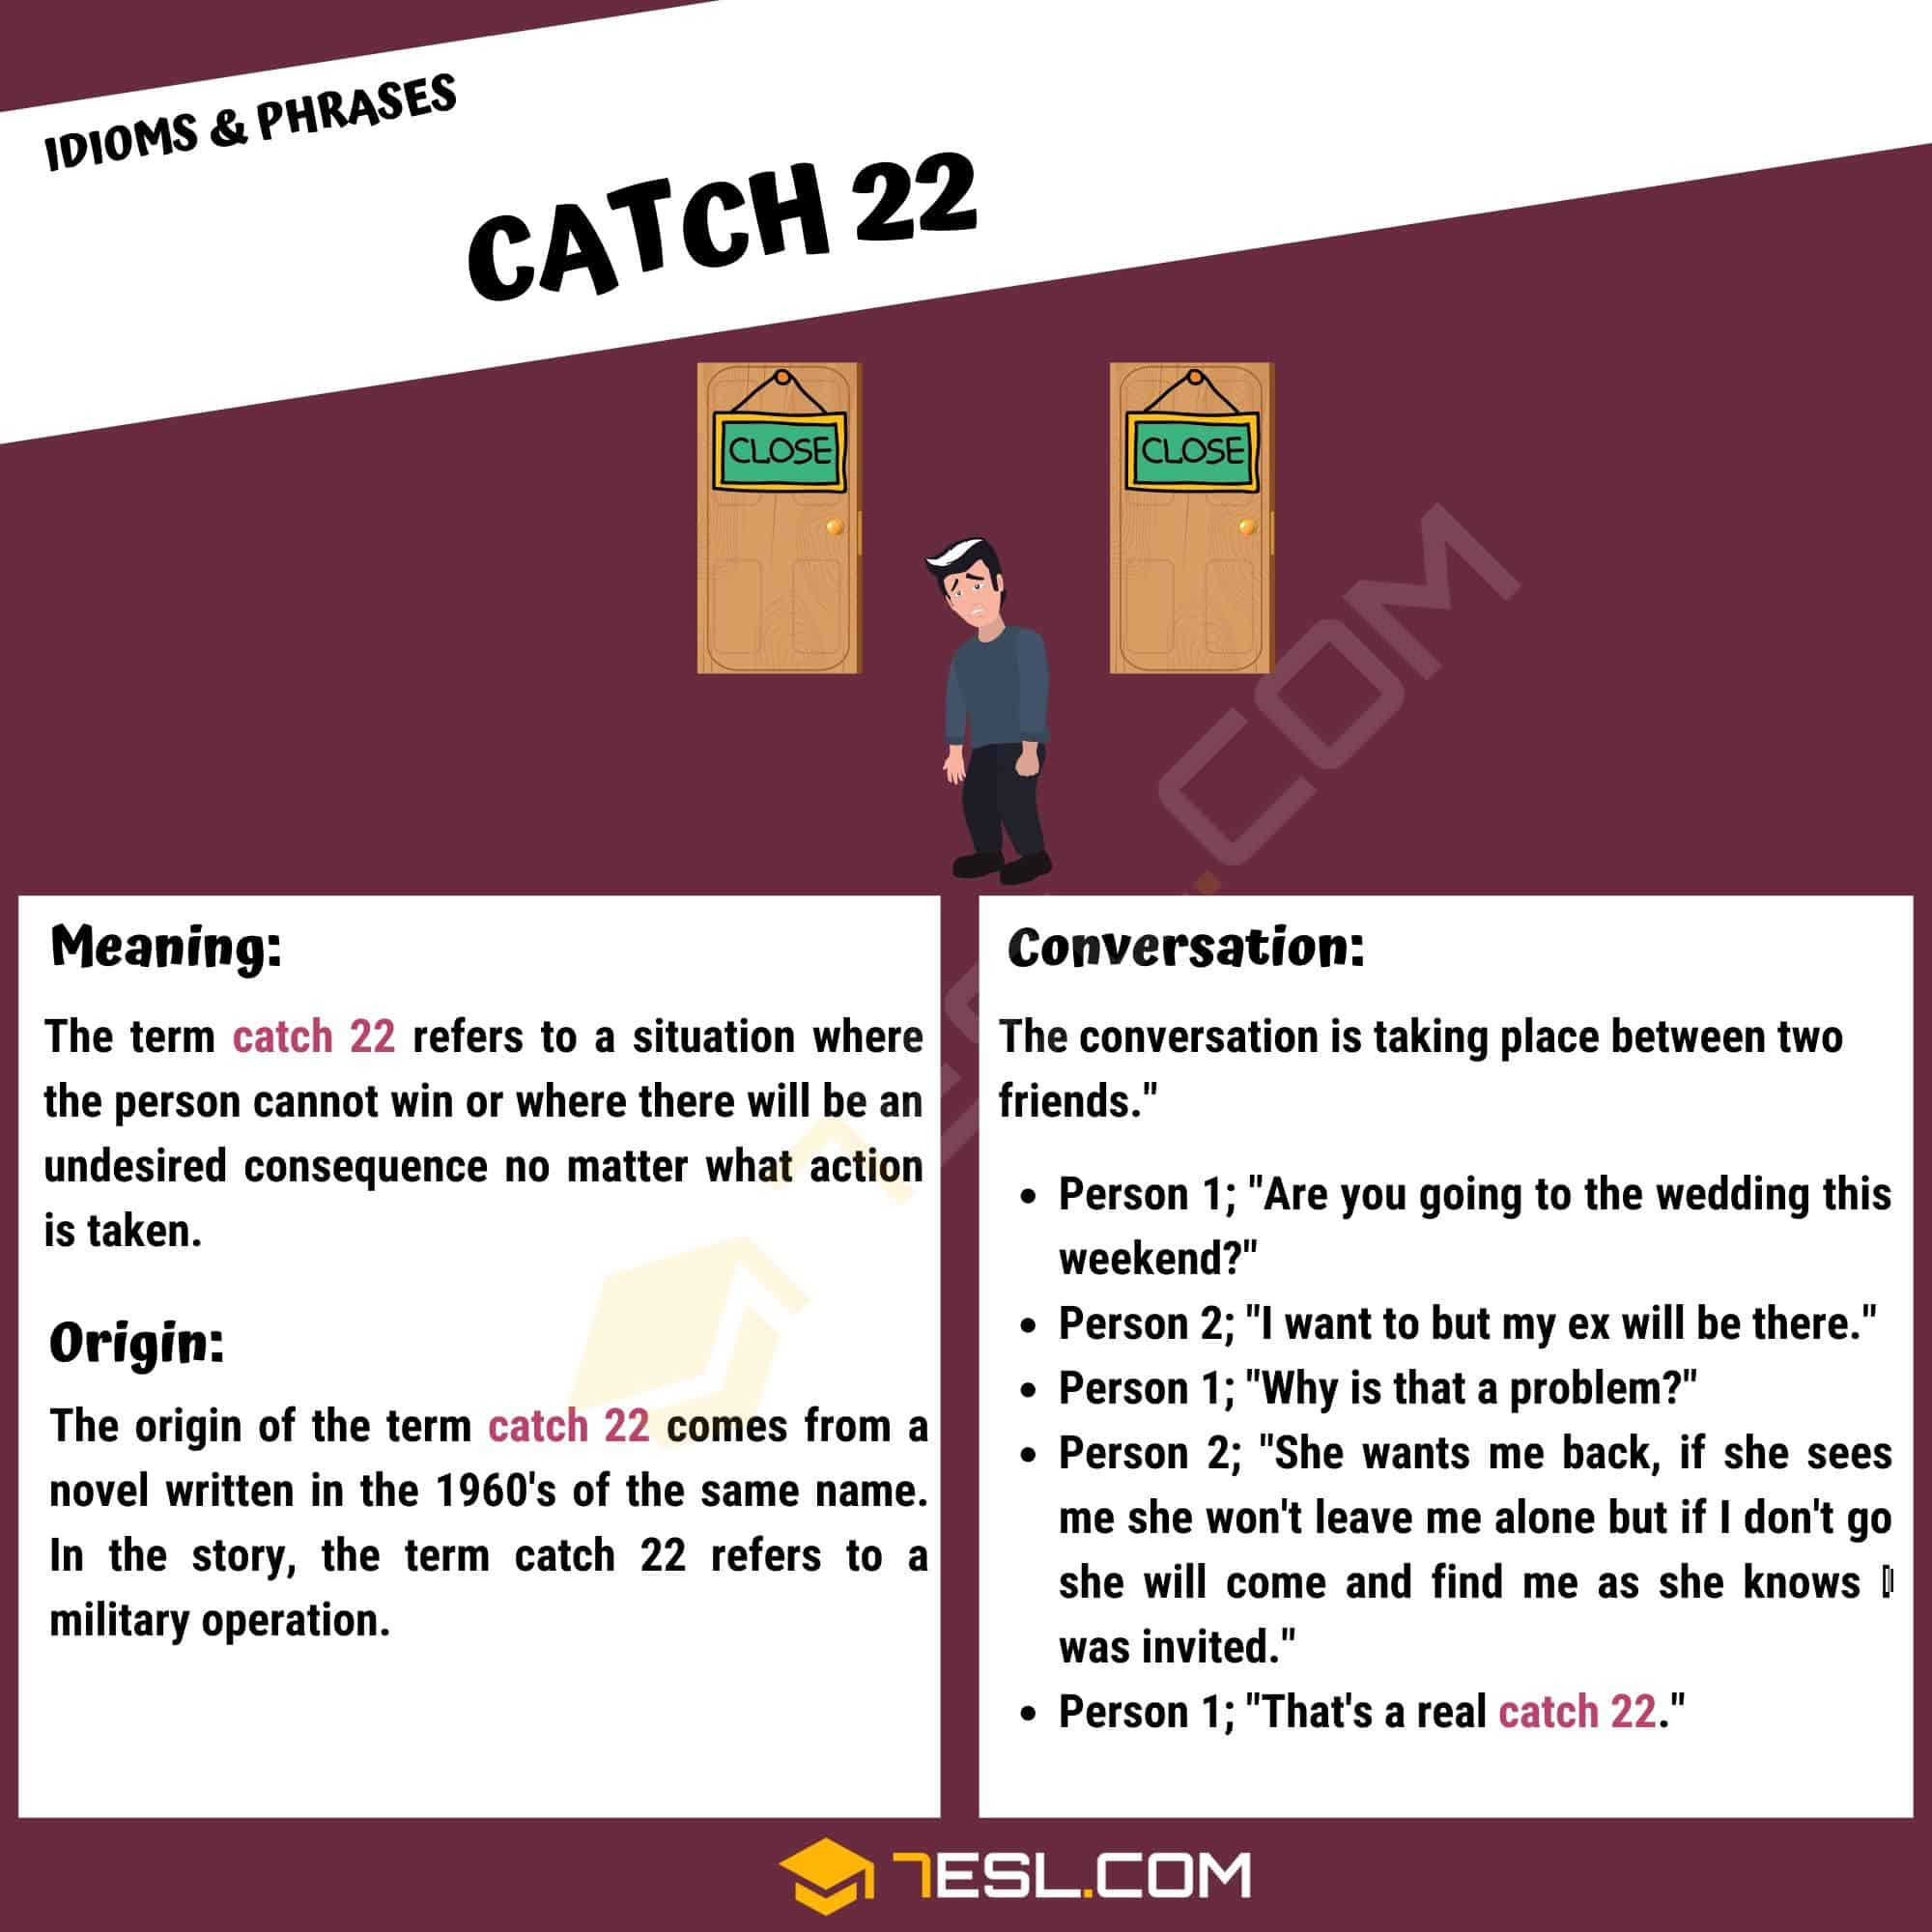 """Catch 22: What Does The Interesting Term """"Catch 22"""" Mean? - 7 E S L"""